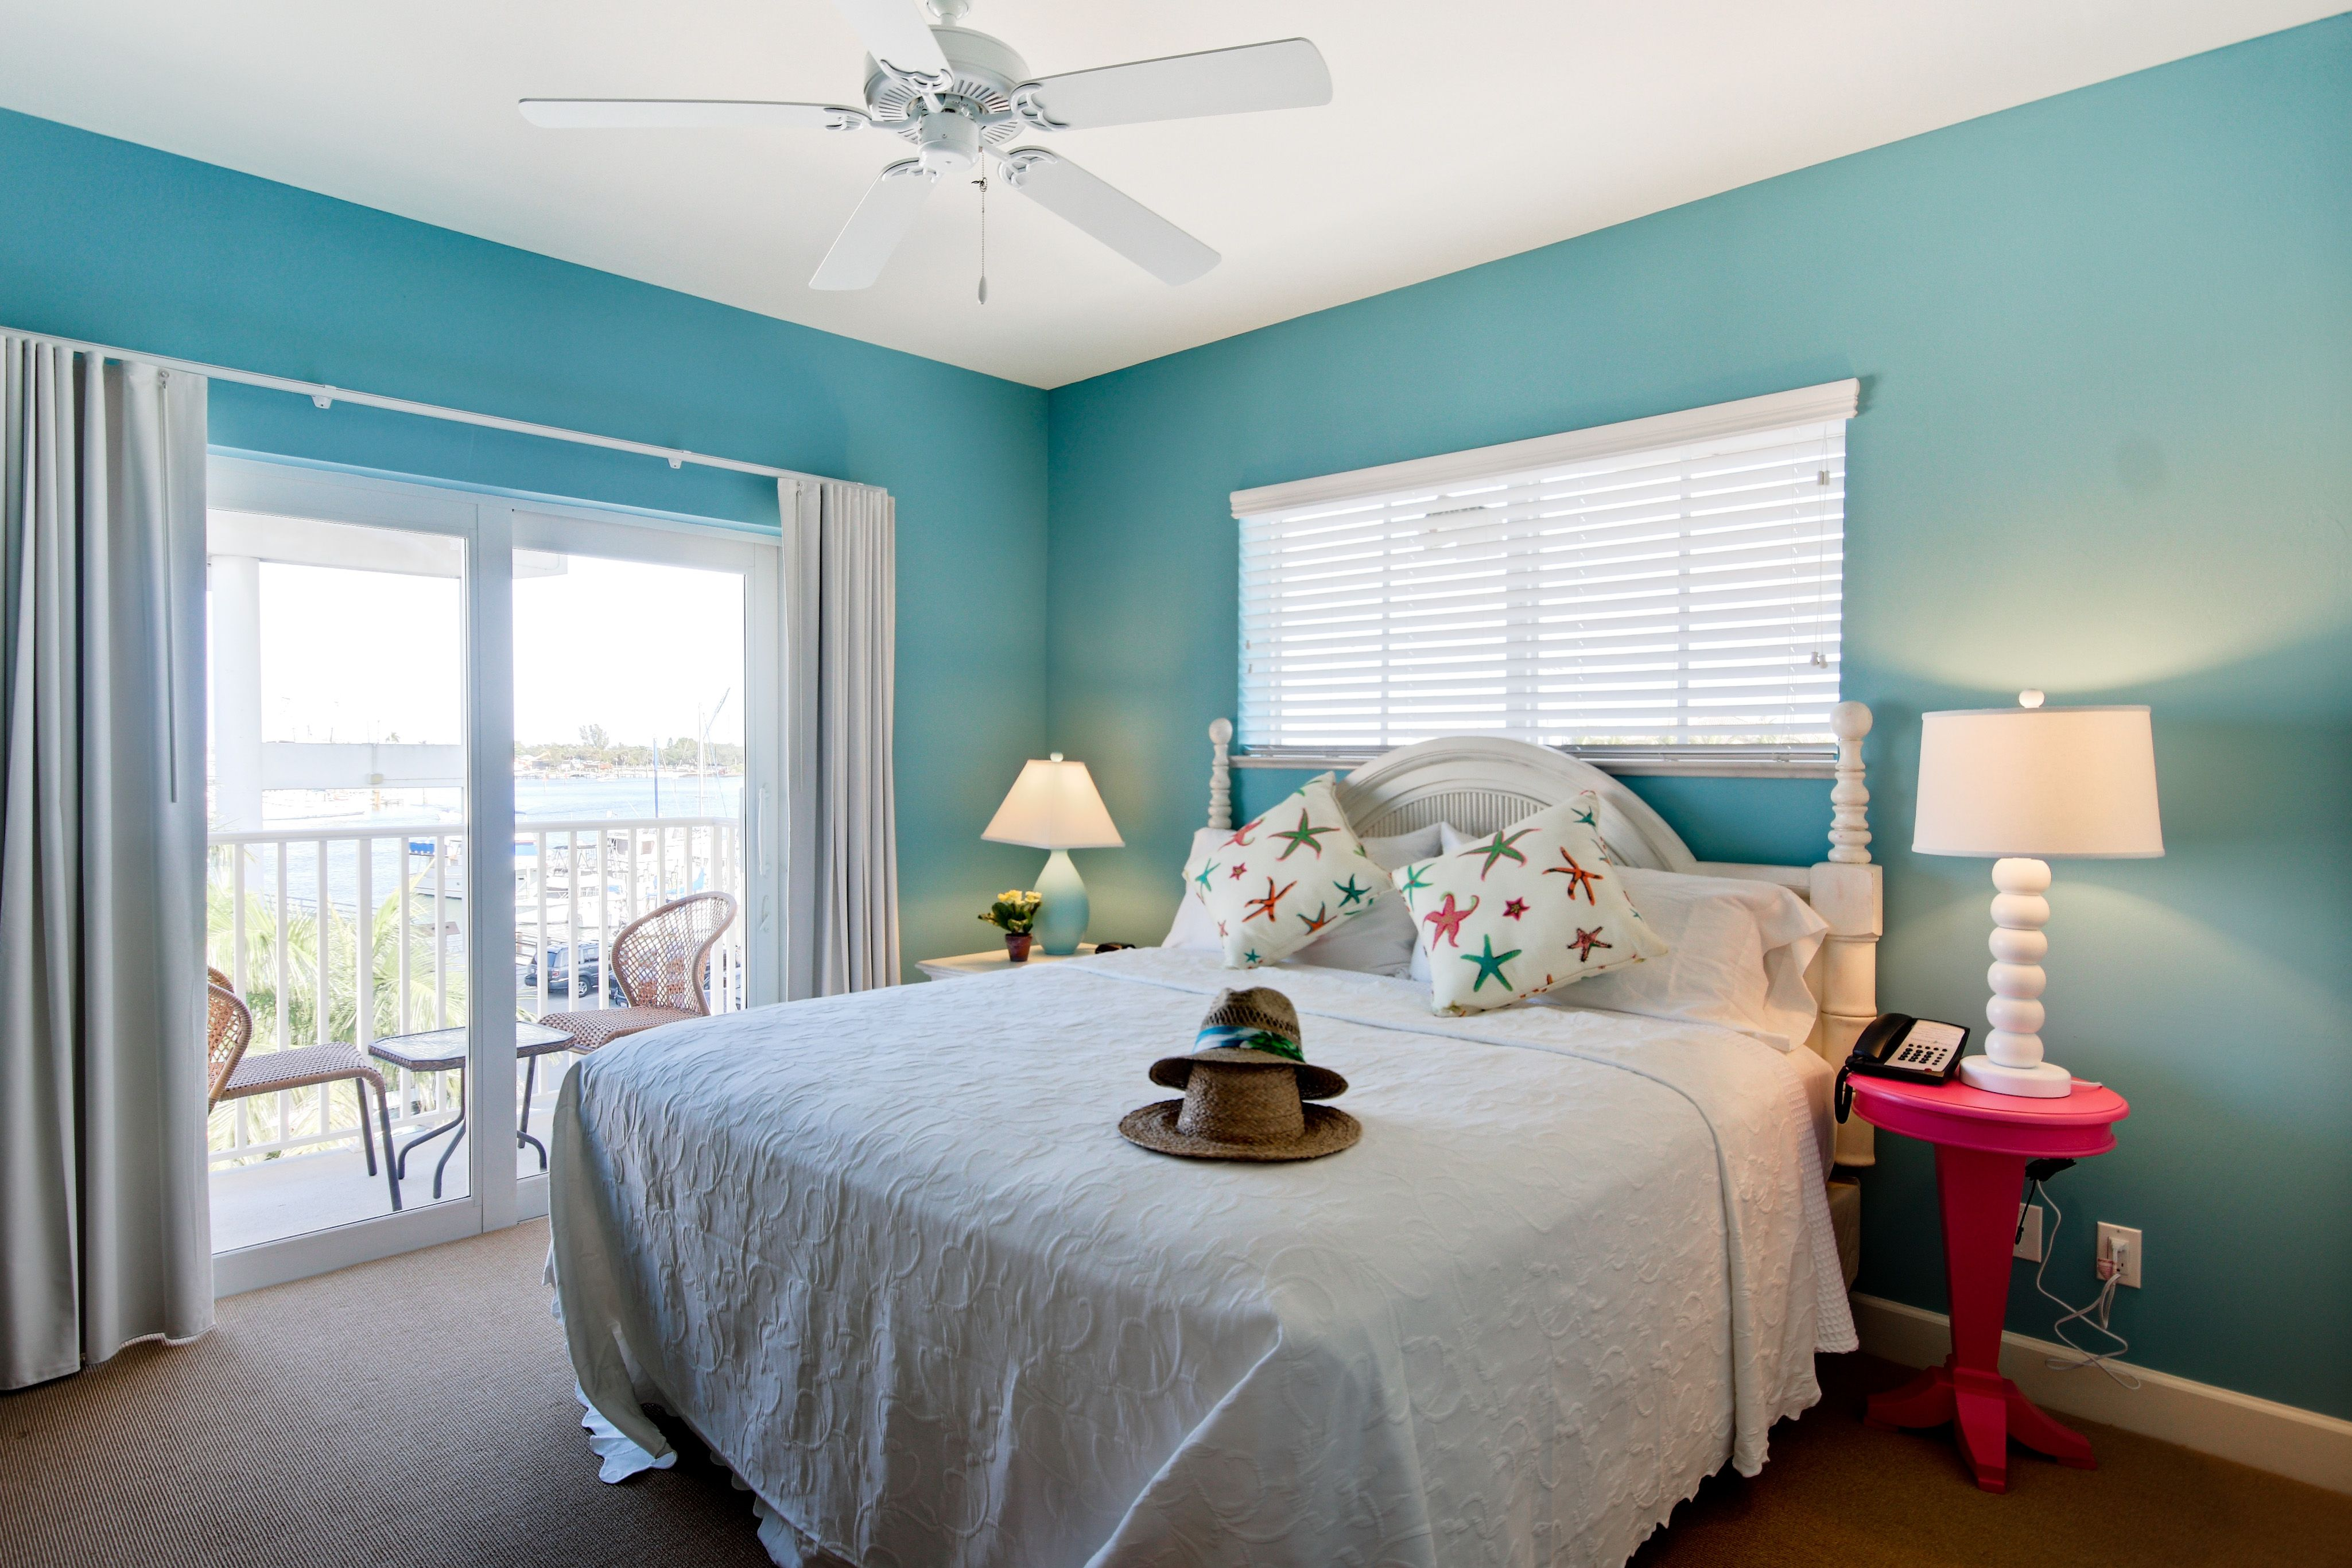 Master Bedroom In The 2 Bedrooms Suite Harbour House At The Inn Bedroom Makeover 2 Bedroom Suites Home Decor